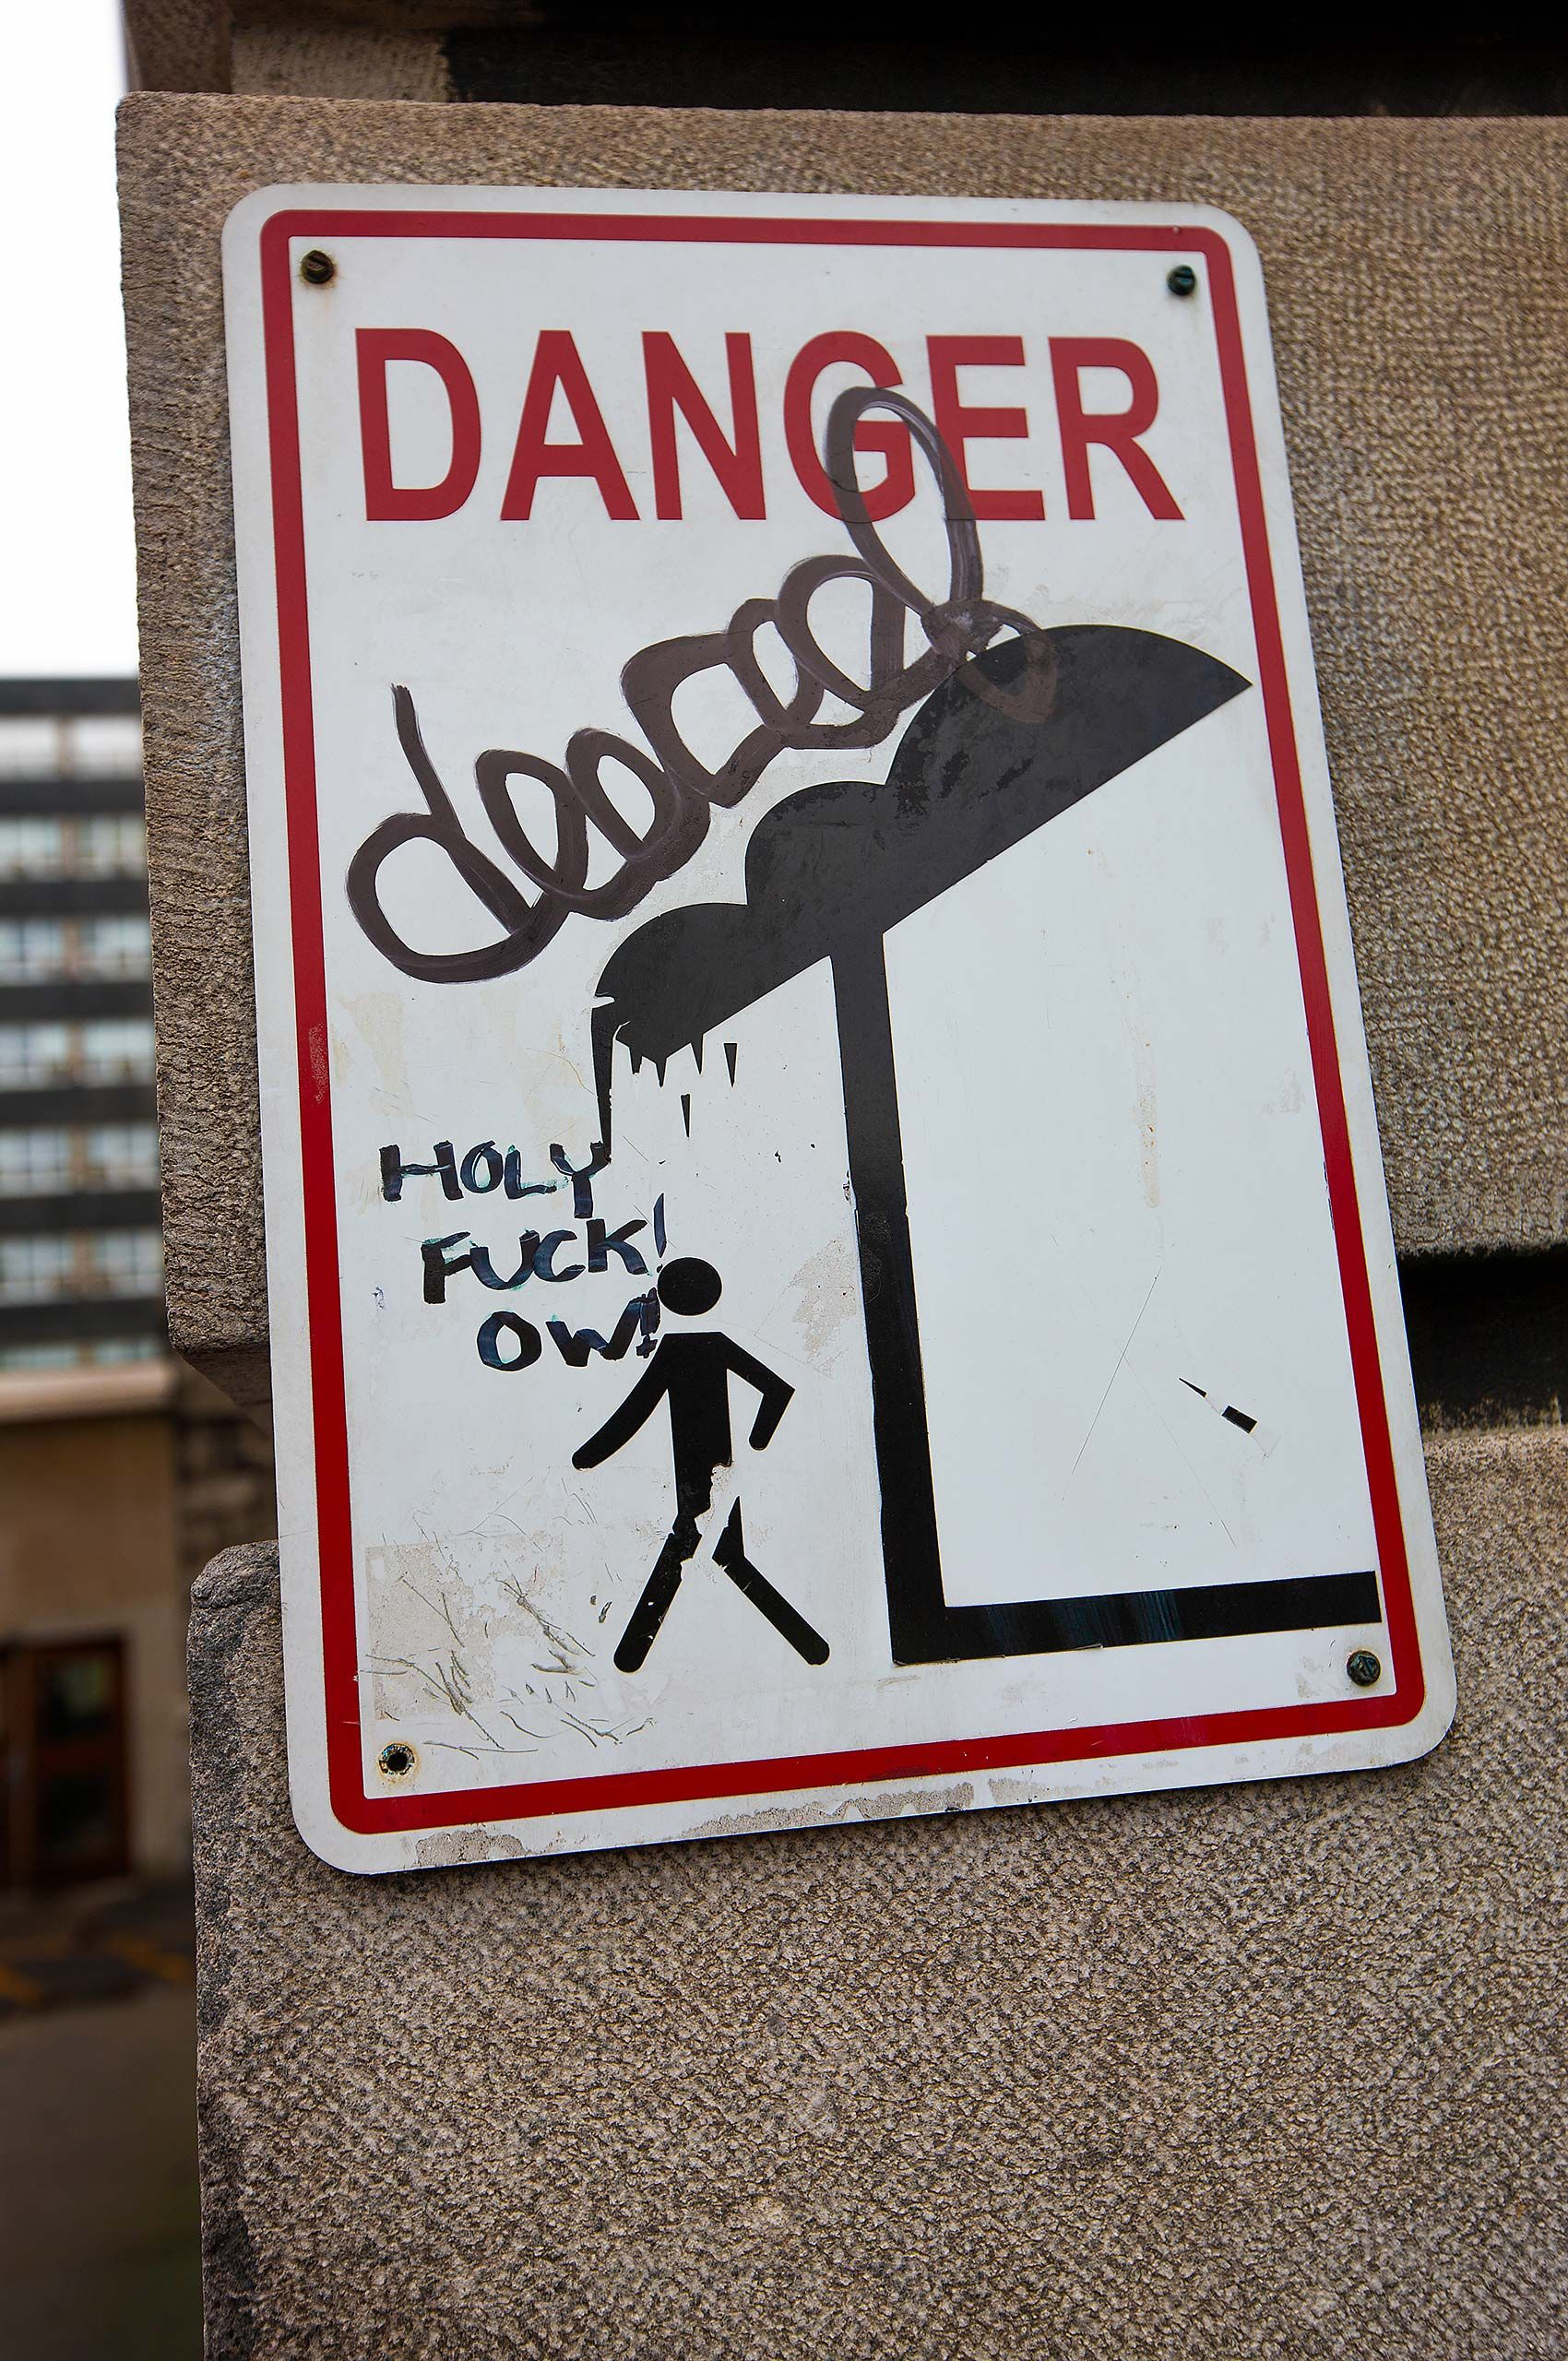 Graffiti at it's best Danger warning. Holy fuck ouh waring for falling ice and water